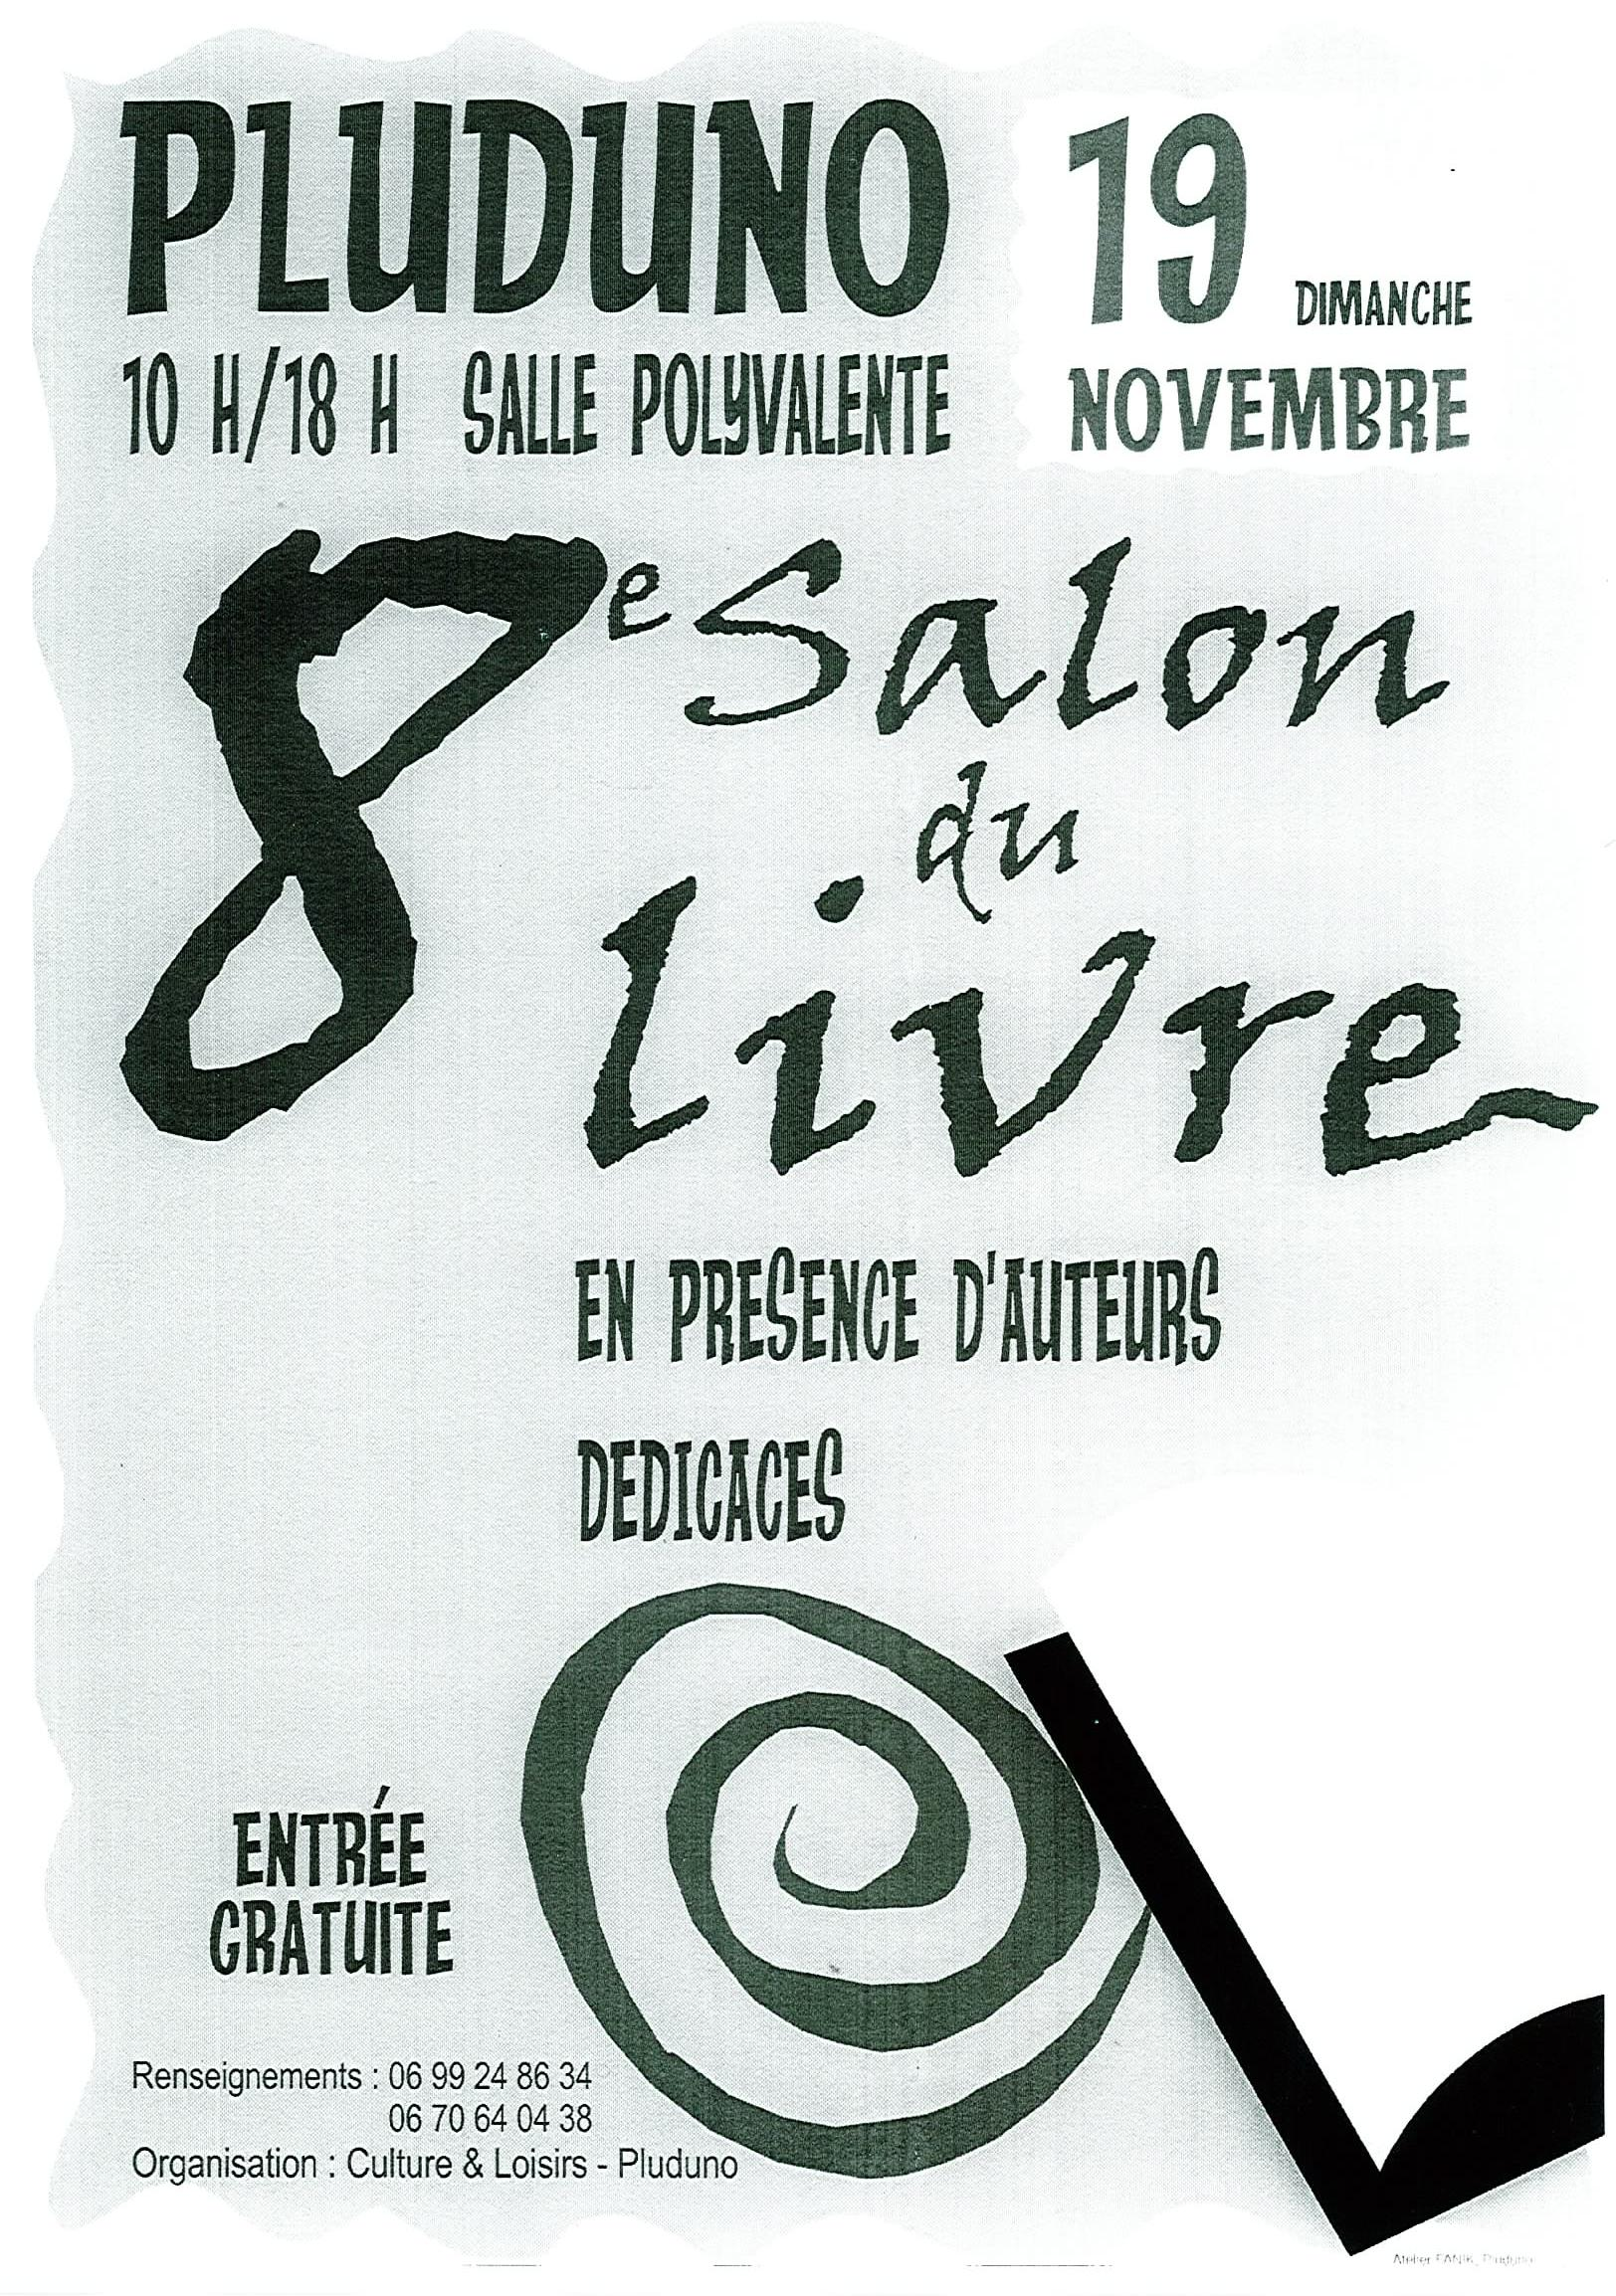 Salon du livre pluduno 19 11 2017 10h00 forum for Salon du livre 2017